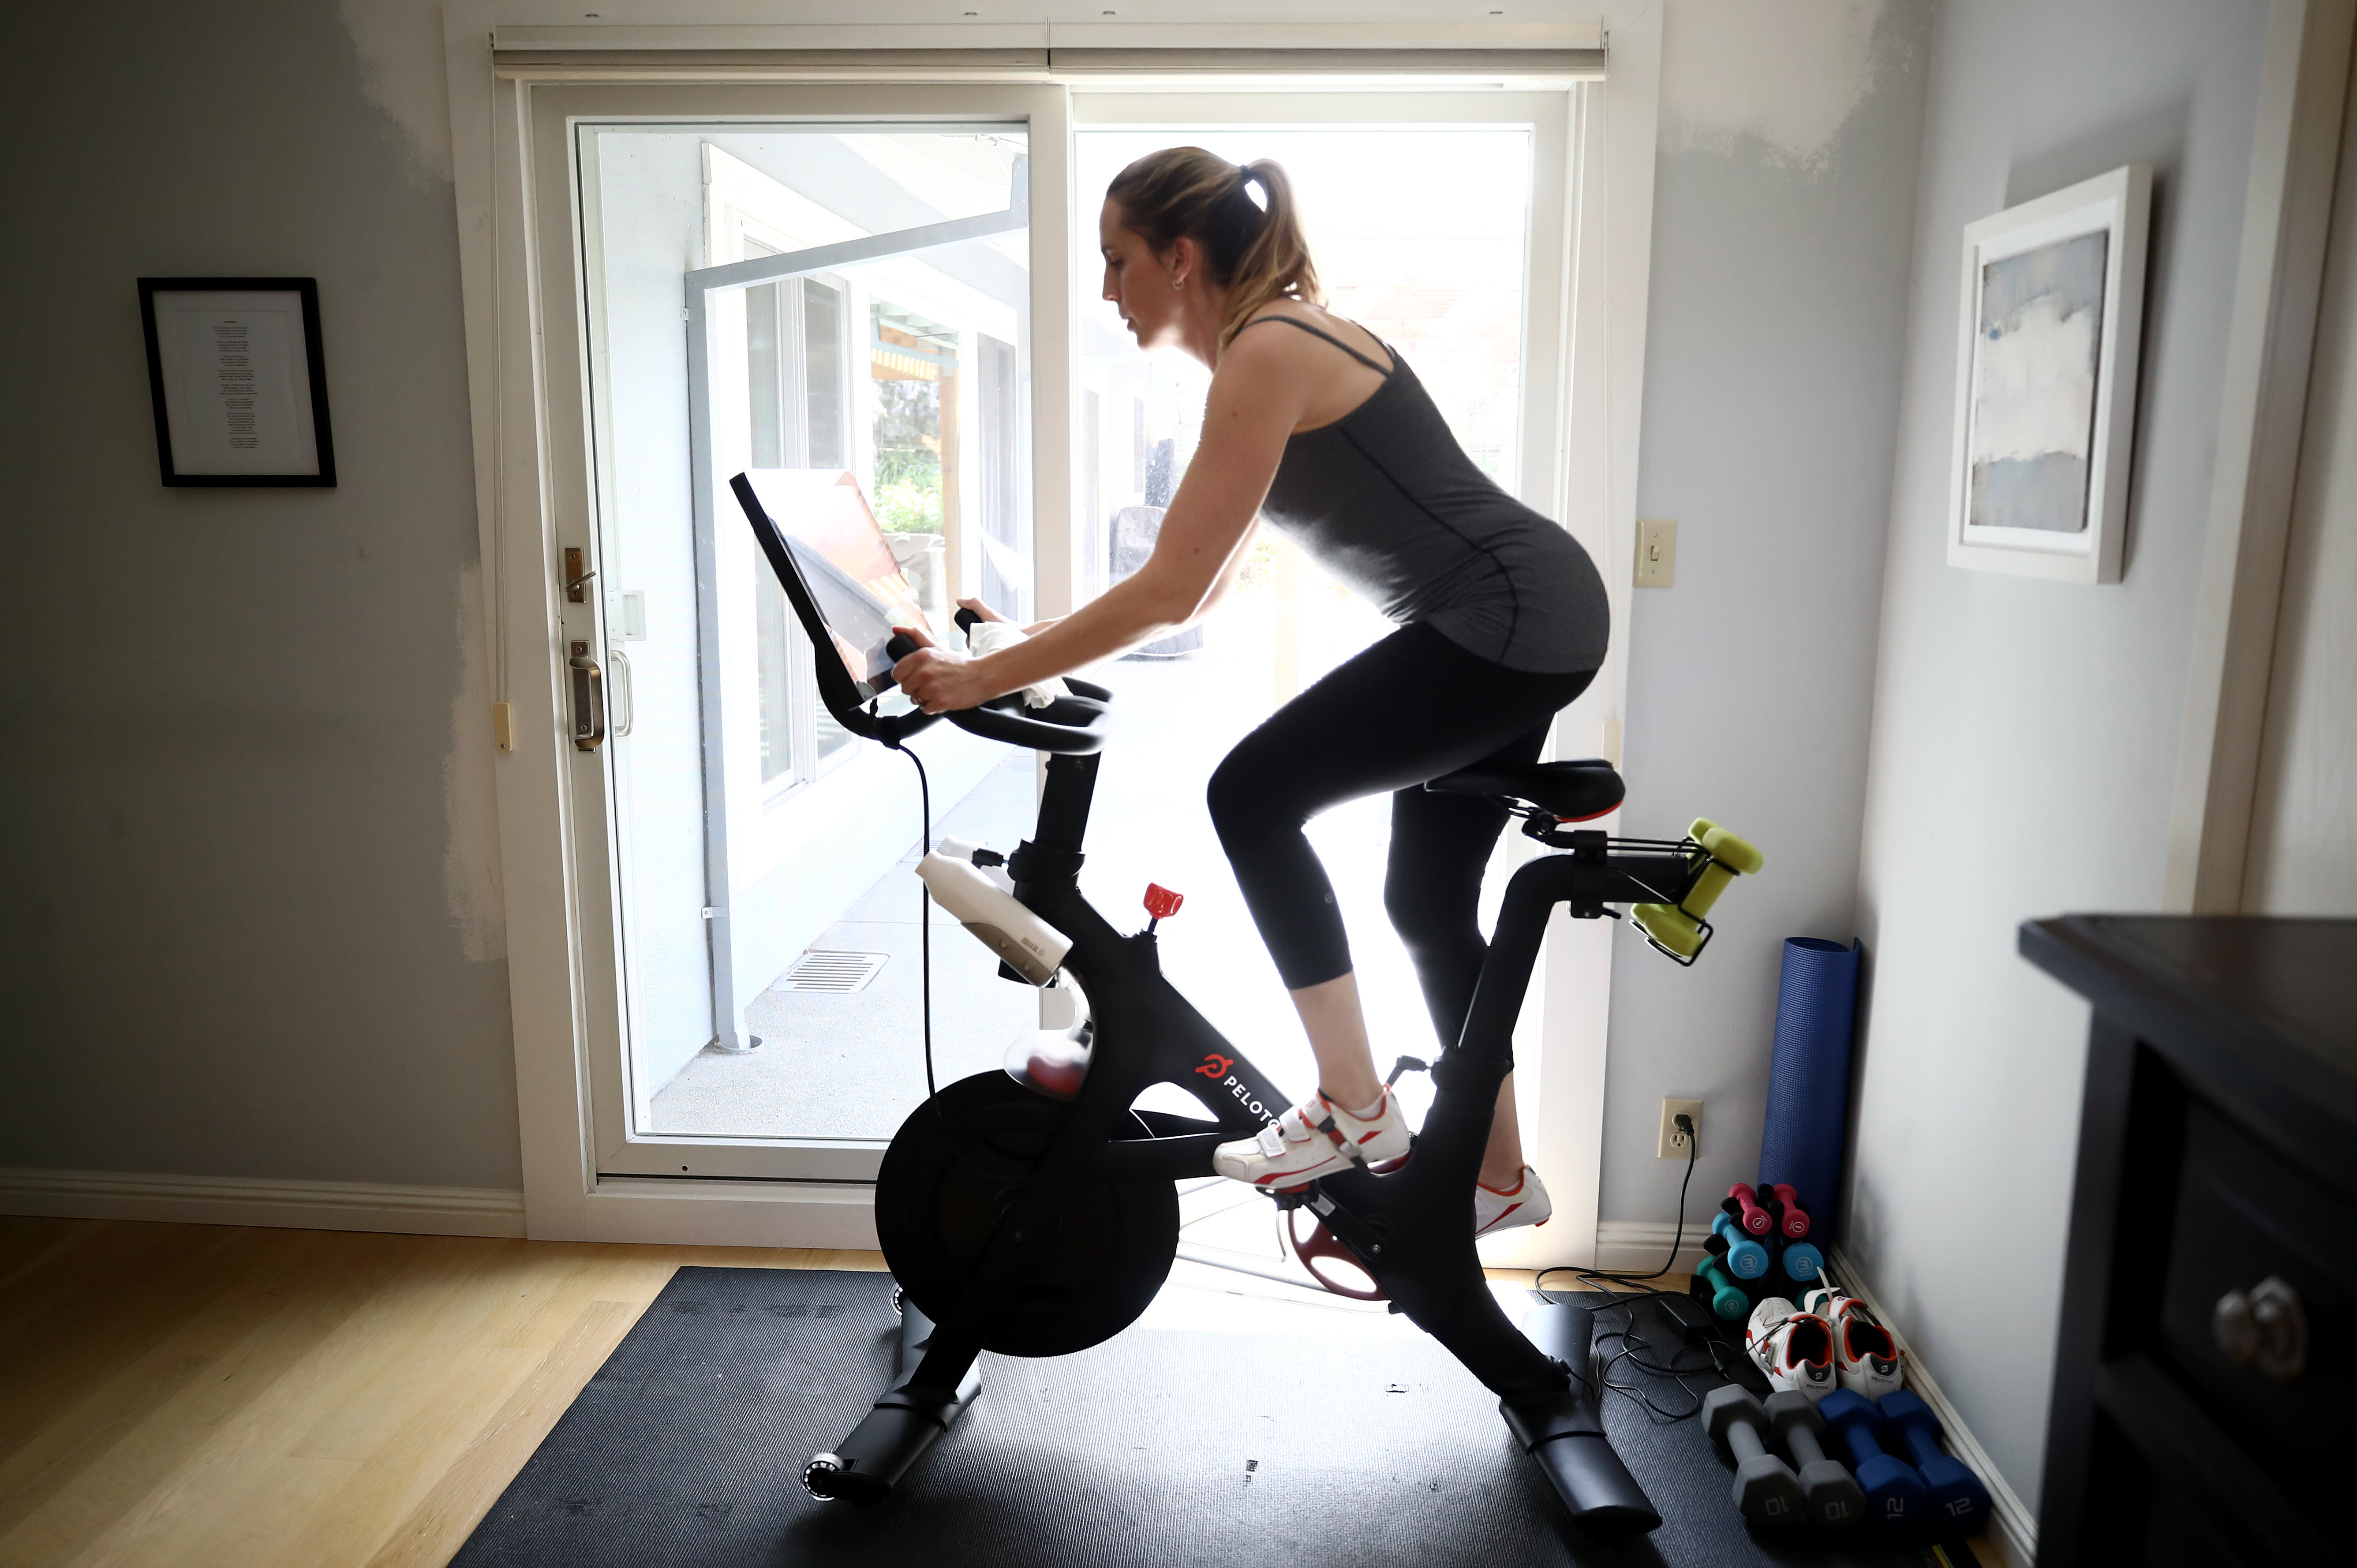 Peloton investors face a new reality as fitness company's costs eat into profits